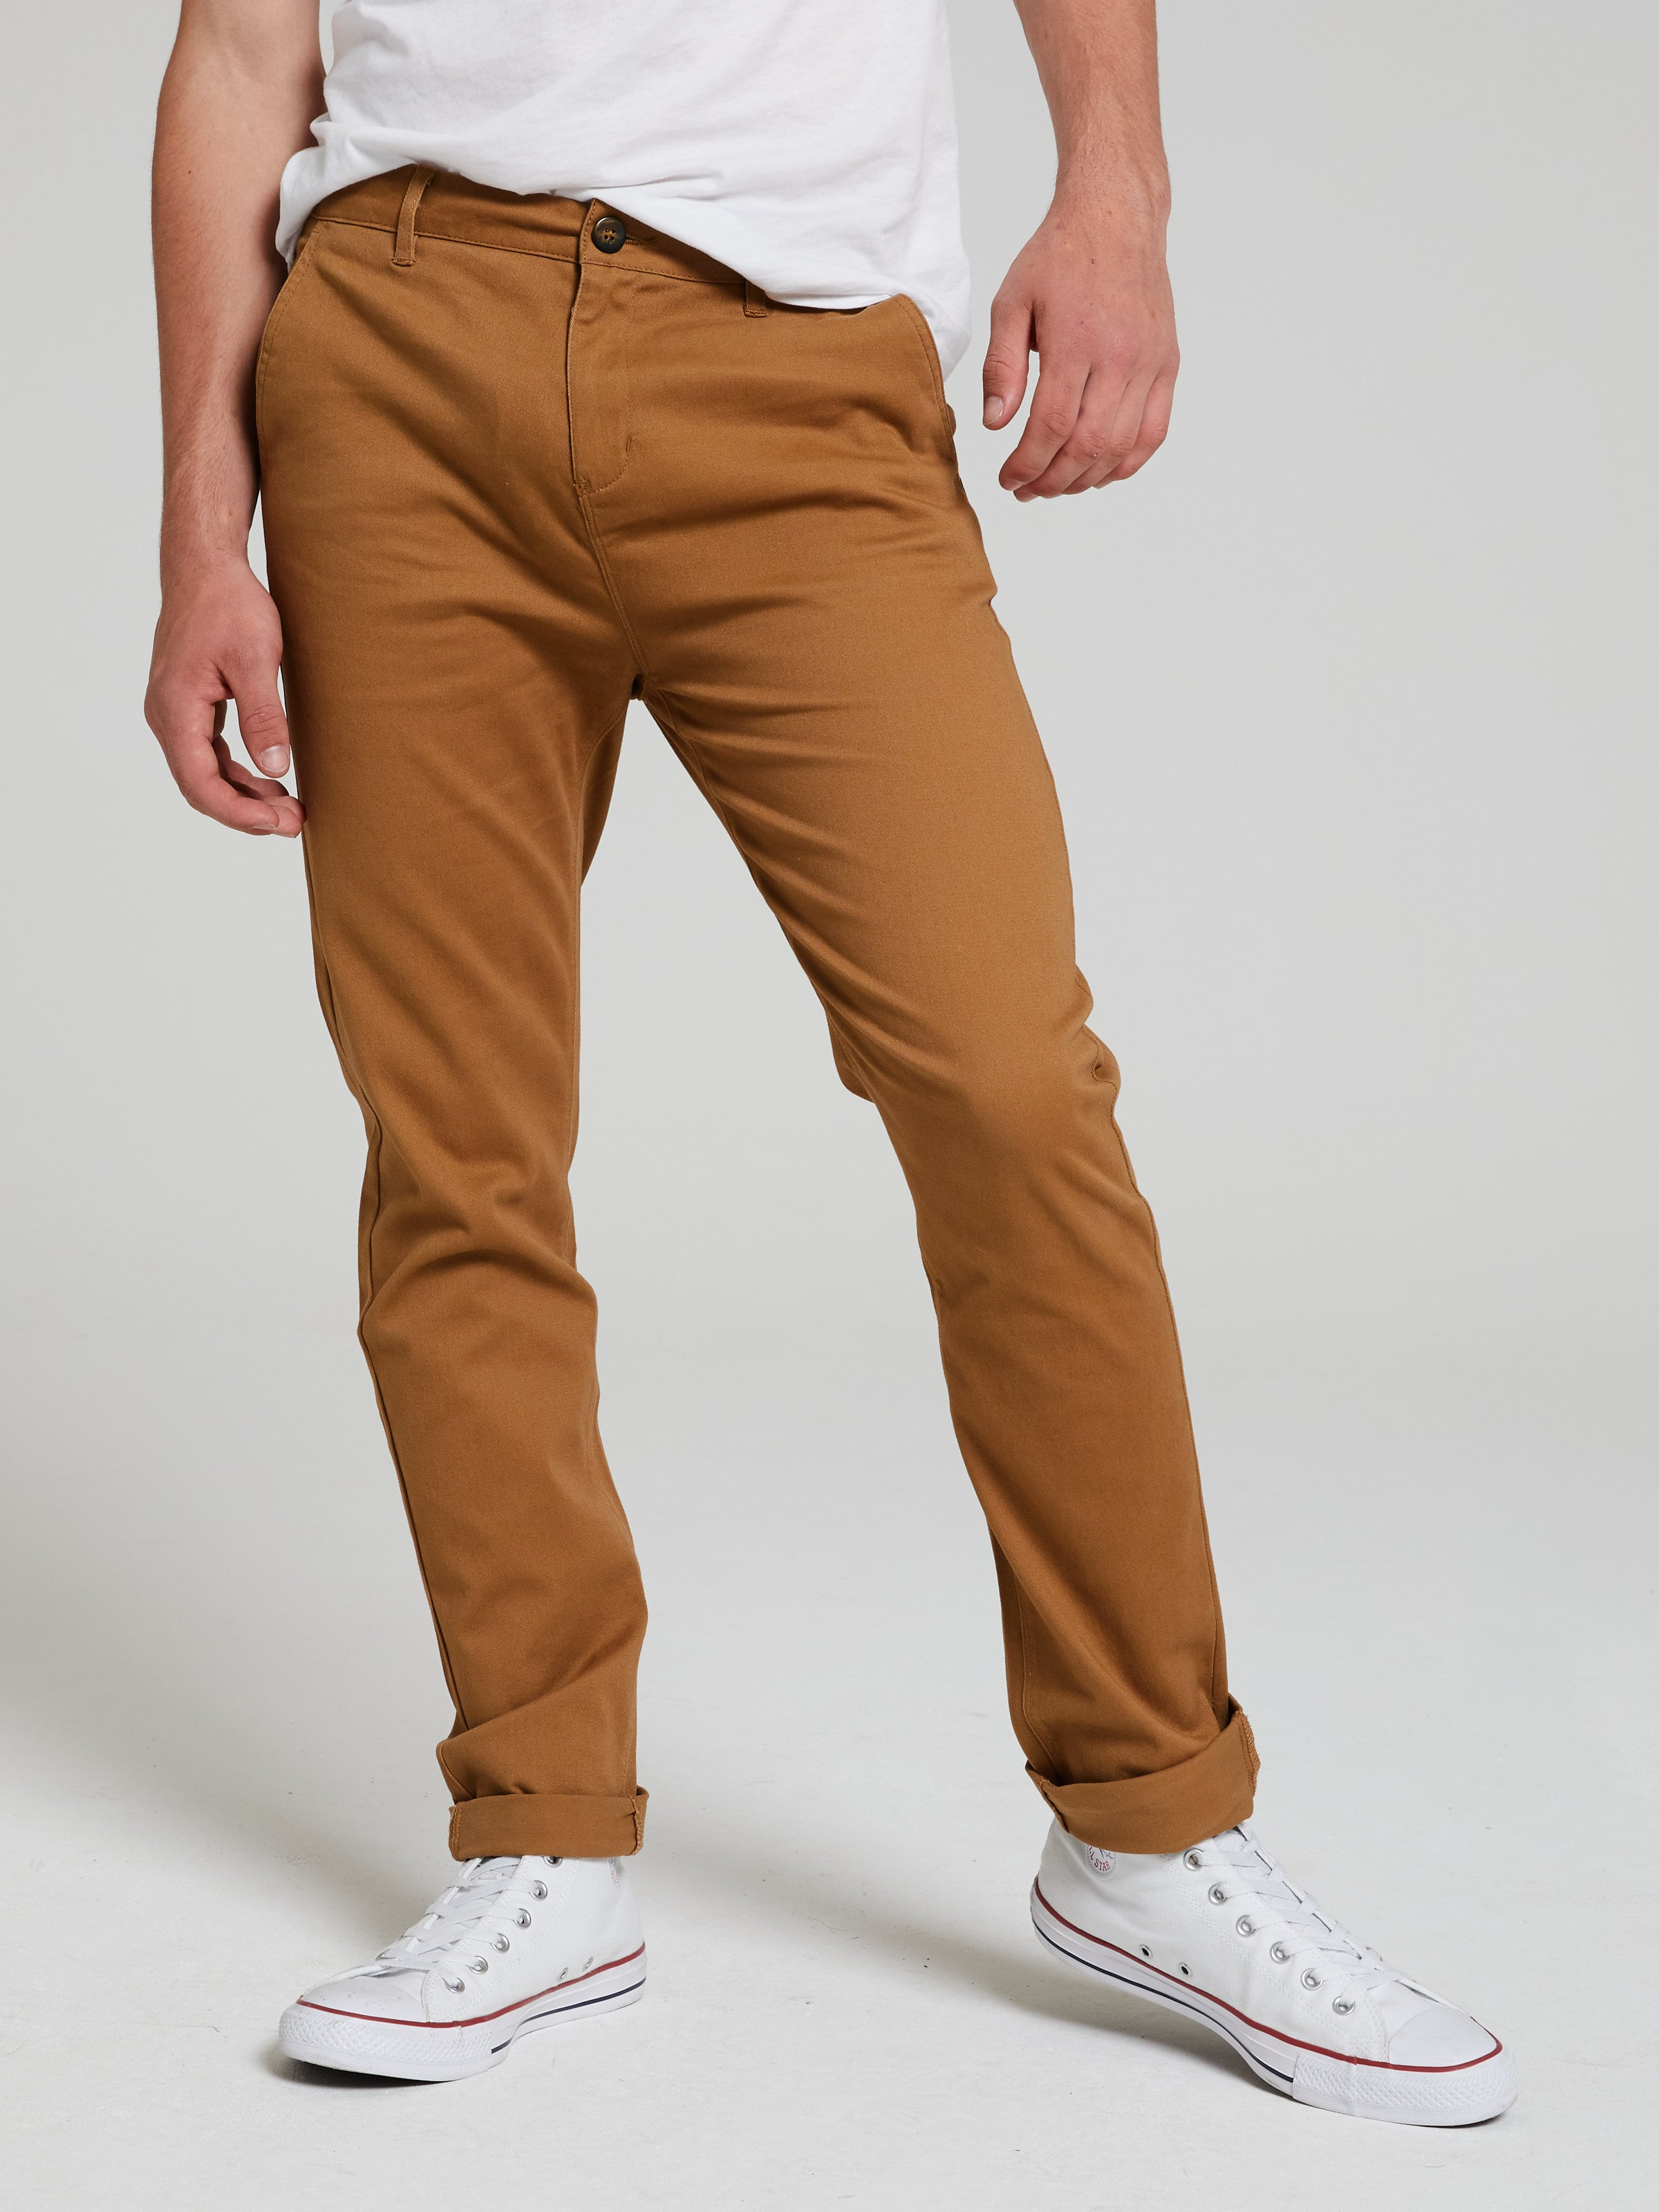 Just Jeans Boys Justin Stretch Chino 8397706